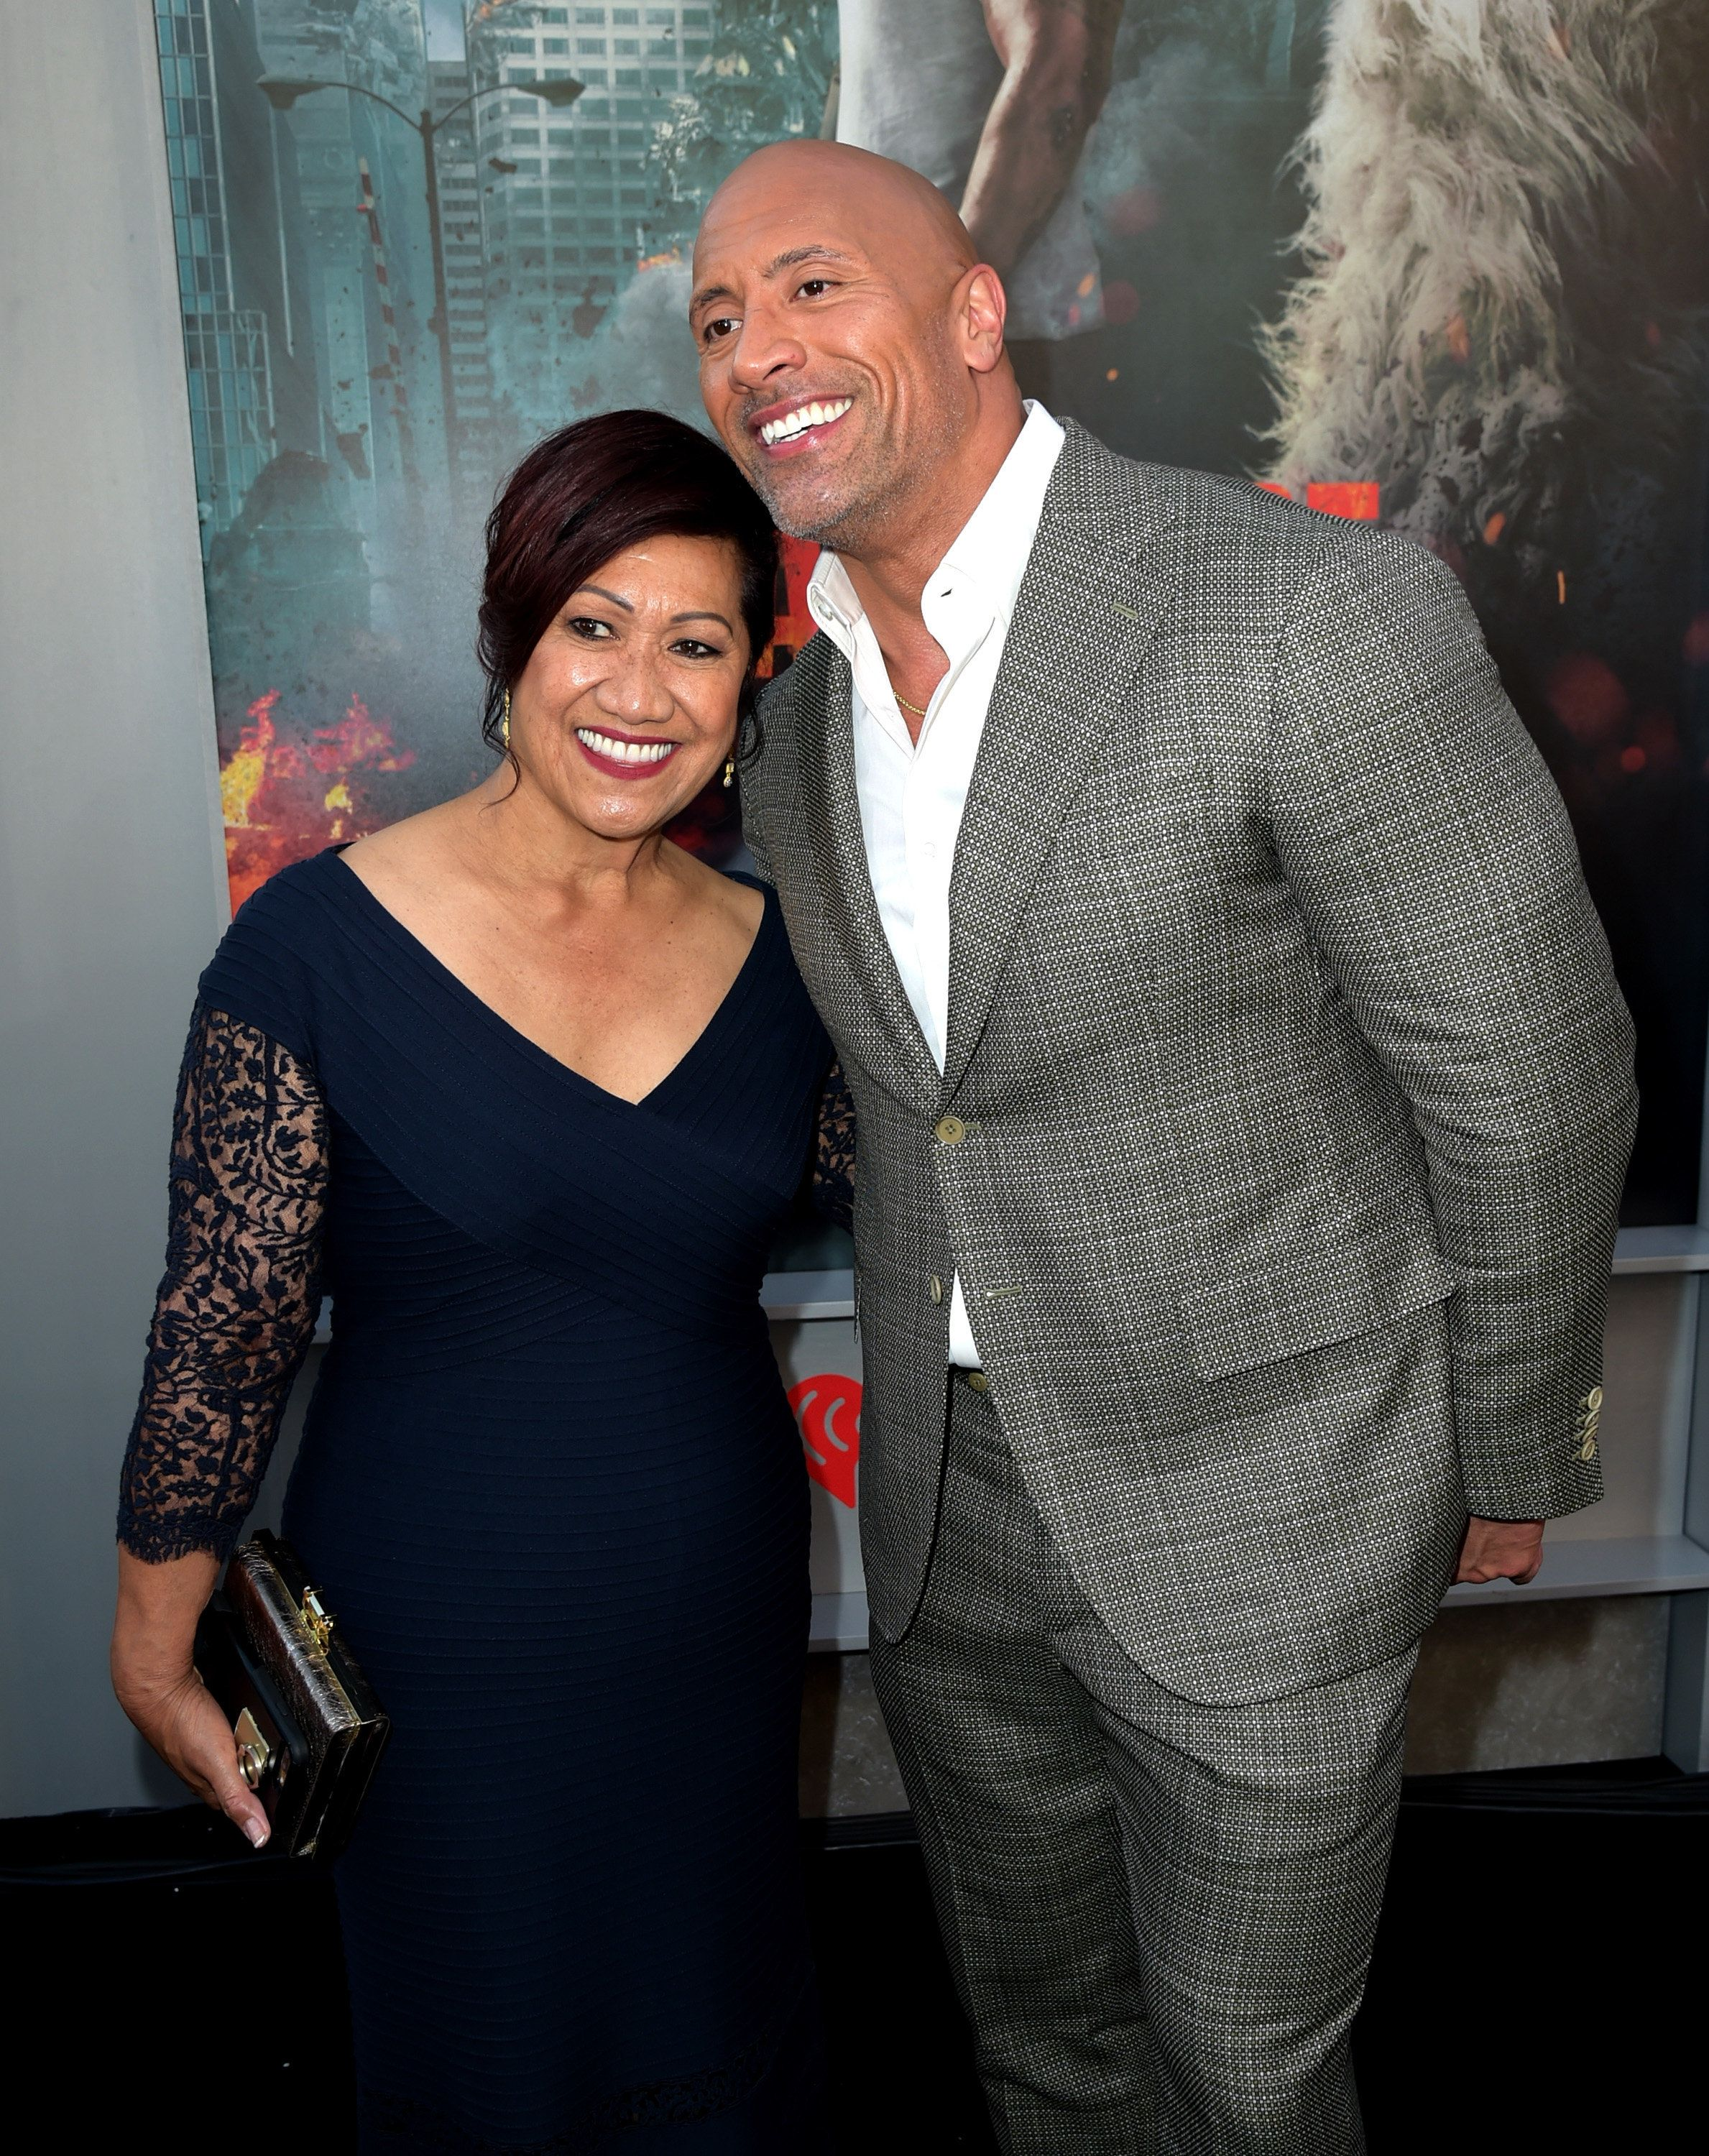 LOS ANGELES, CA - APRIL 04:  Actor Dwayne Johnson (R) and his mother Ata Johnson arrive at the premiere of Warner Bros. Pictures' 'Rampage' at the Microsoft Theatre on April 4, 2018 in Los Angeles, California.  (Photo by Kevin Winter/Getty Images)